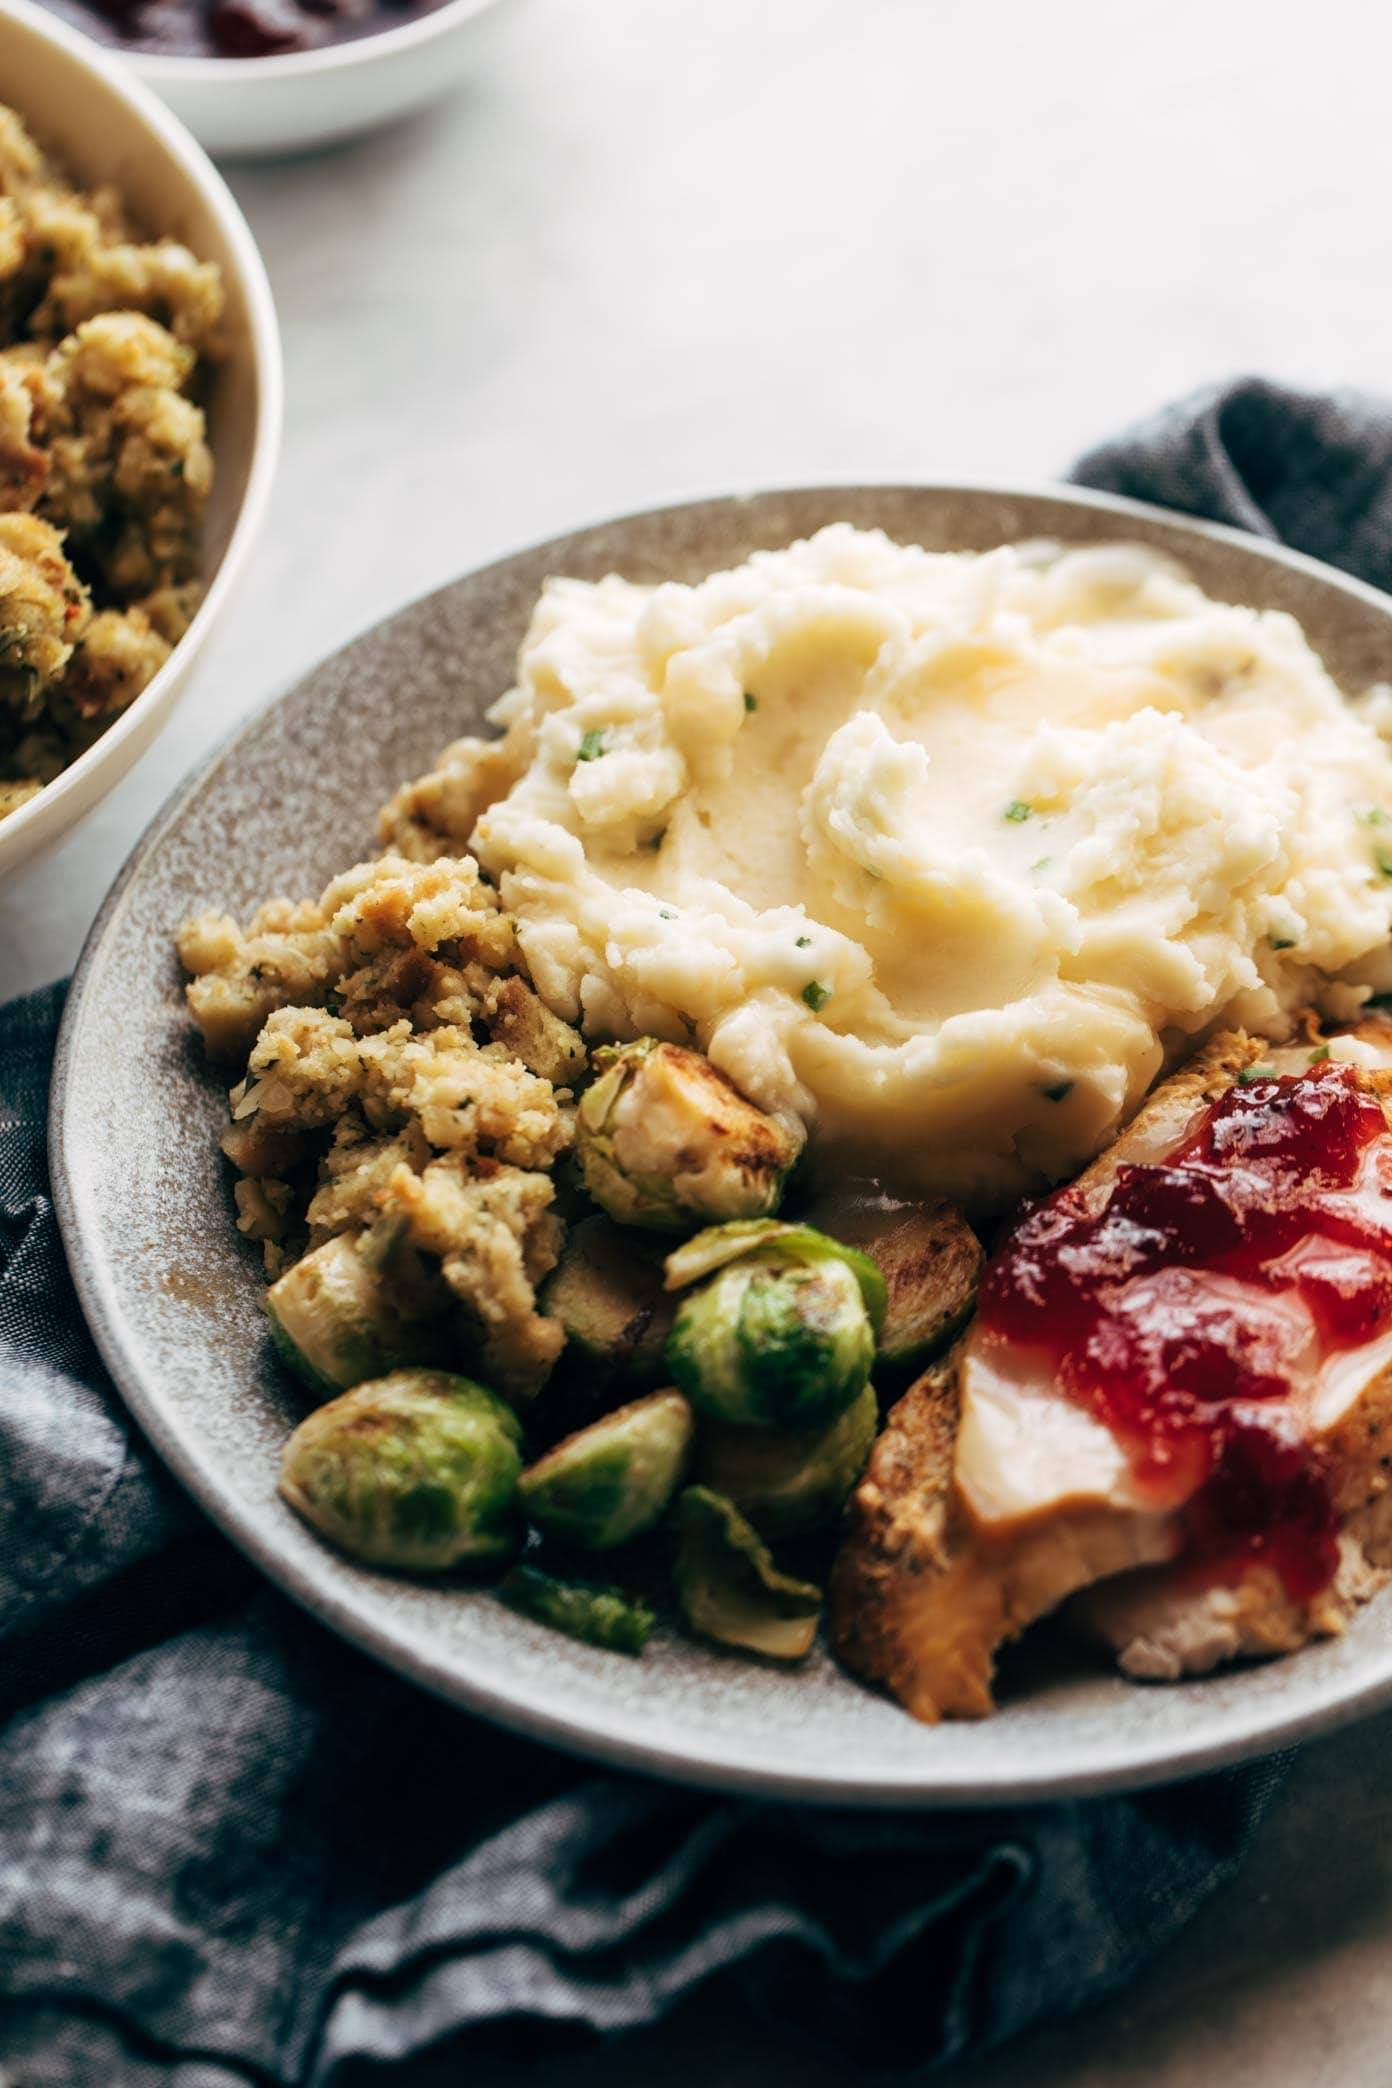 Instant Pot Mashed Potatoes on a plate with stuffing and turkey.